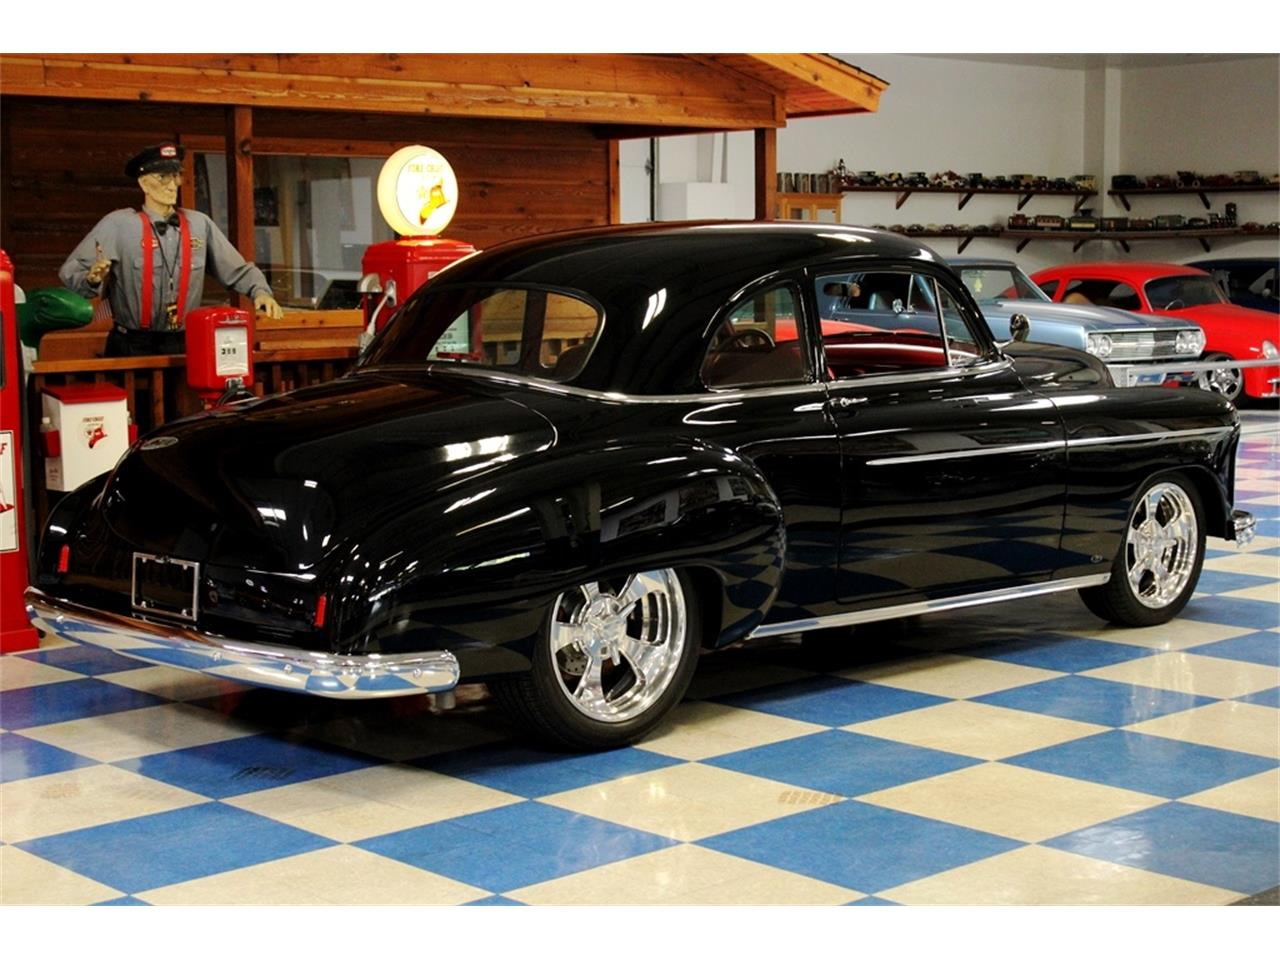 Large Picture of '50 Chevrolet Styleline Deluxe - $79,900.00 - QQK1